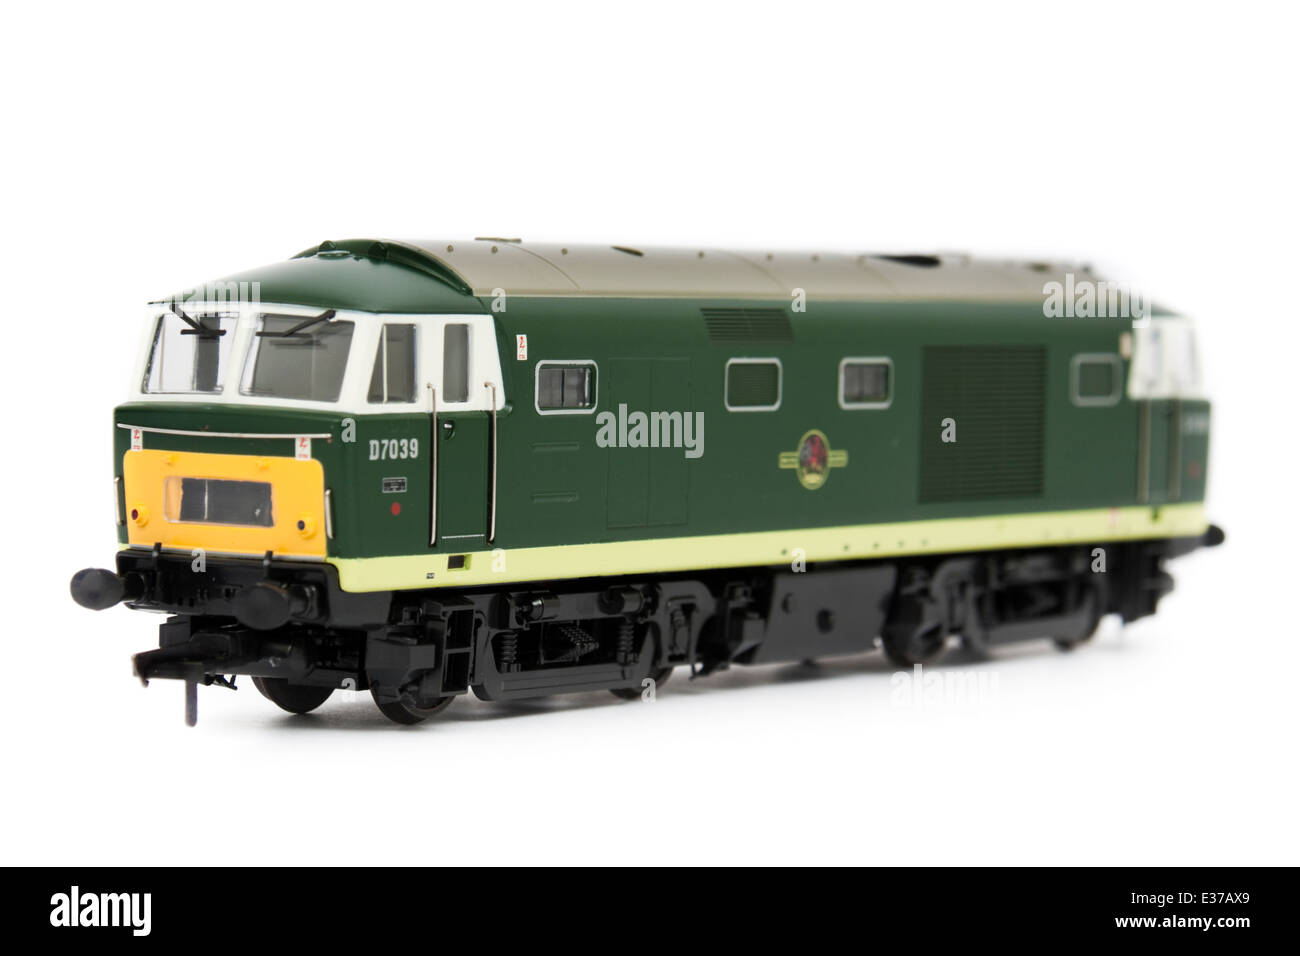 BR Class 35 (D7039) 'Hymek' mixed-traffic B-B diesel locomotive with hydraulic transmission (1:76 scale - Stock Image